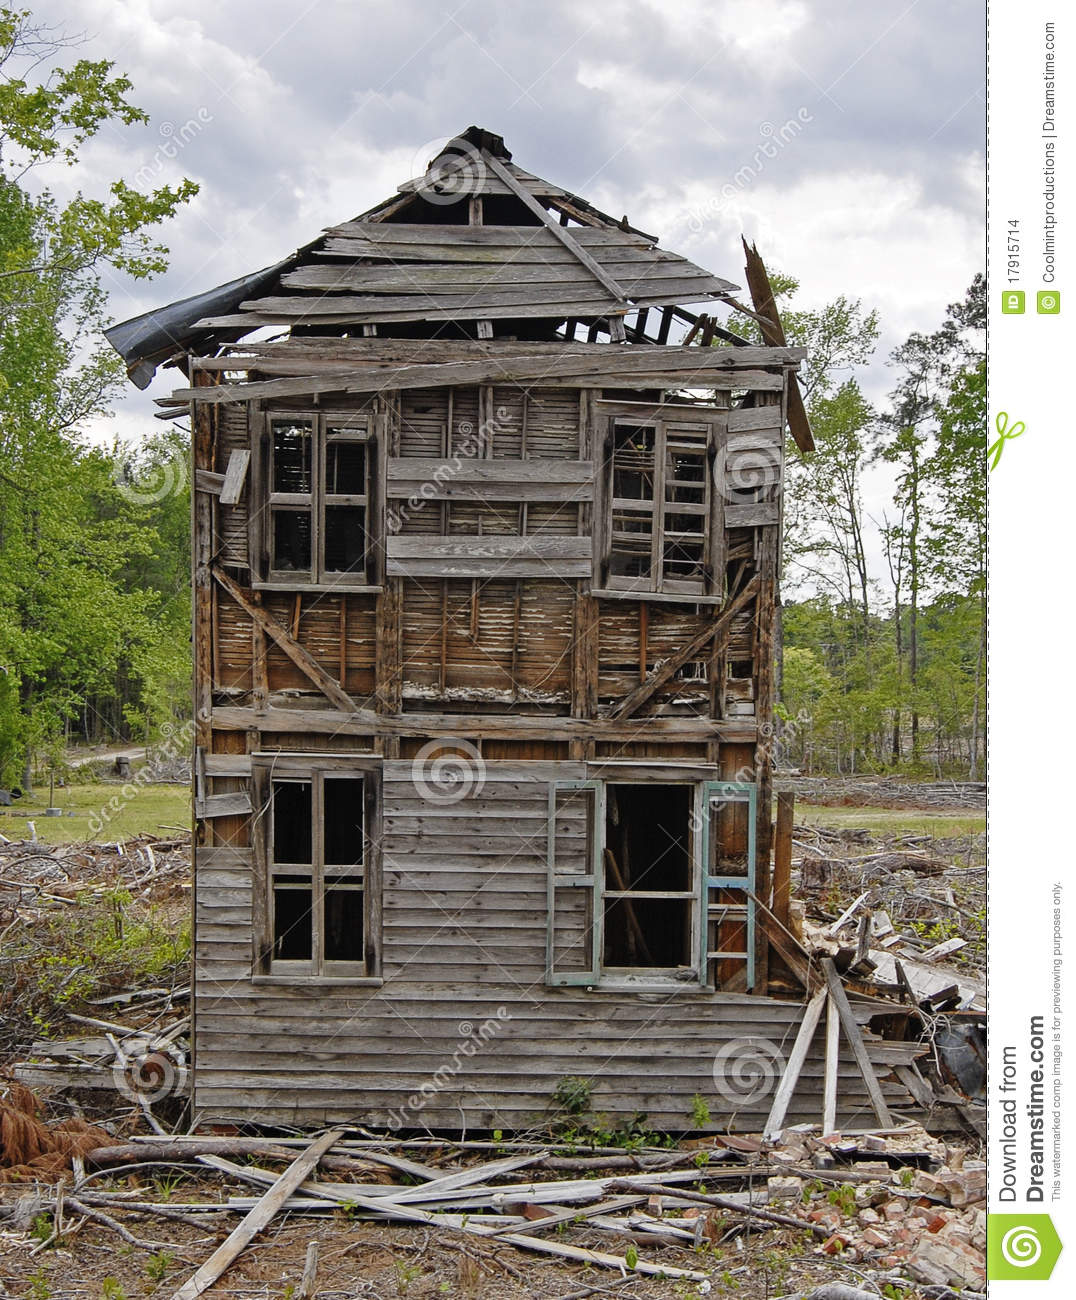 Old Abandoned Collapsing House Cloudy Day Stock Photo